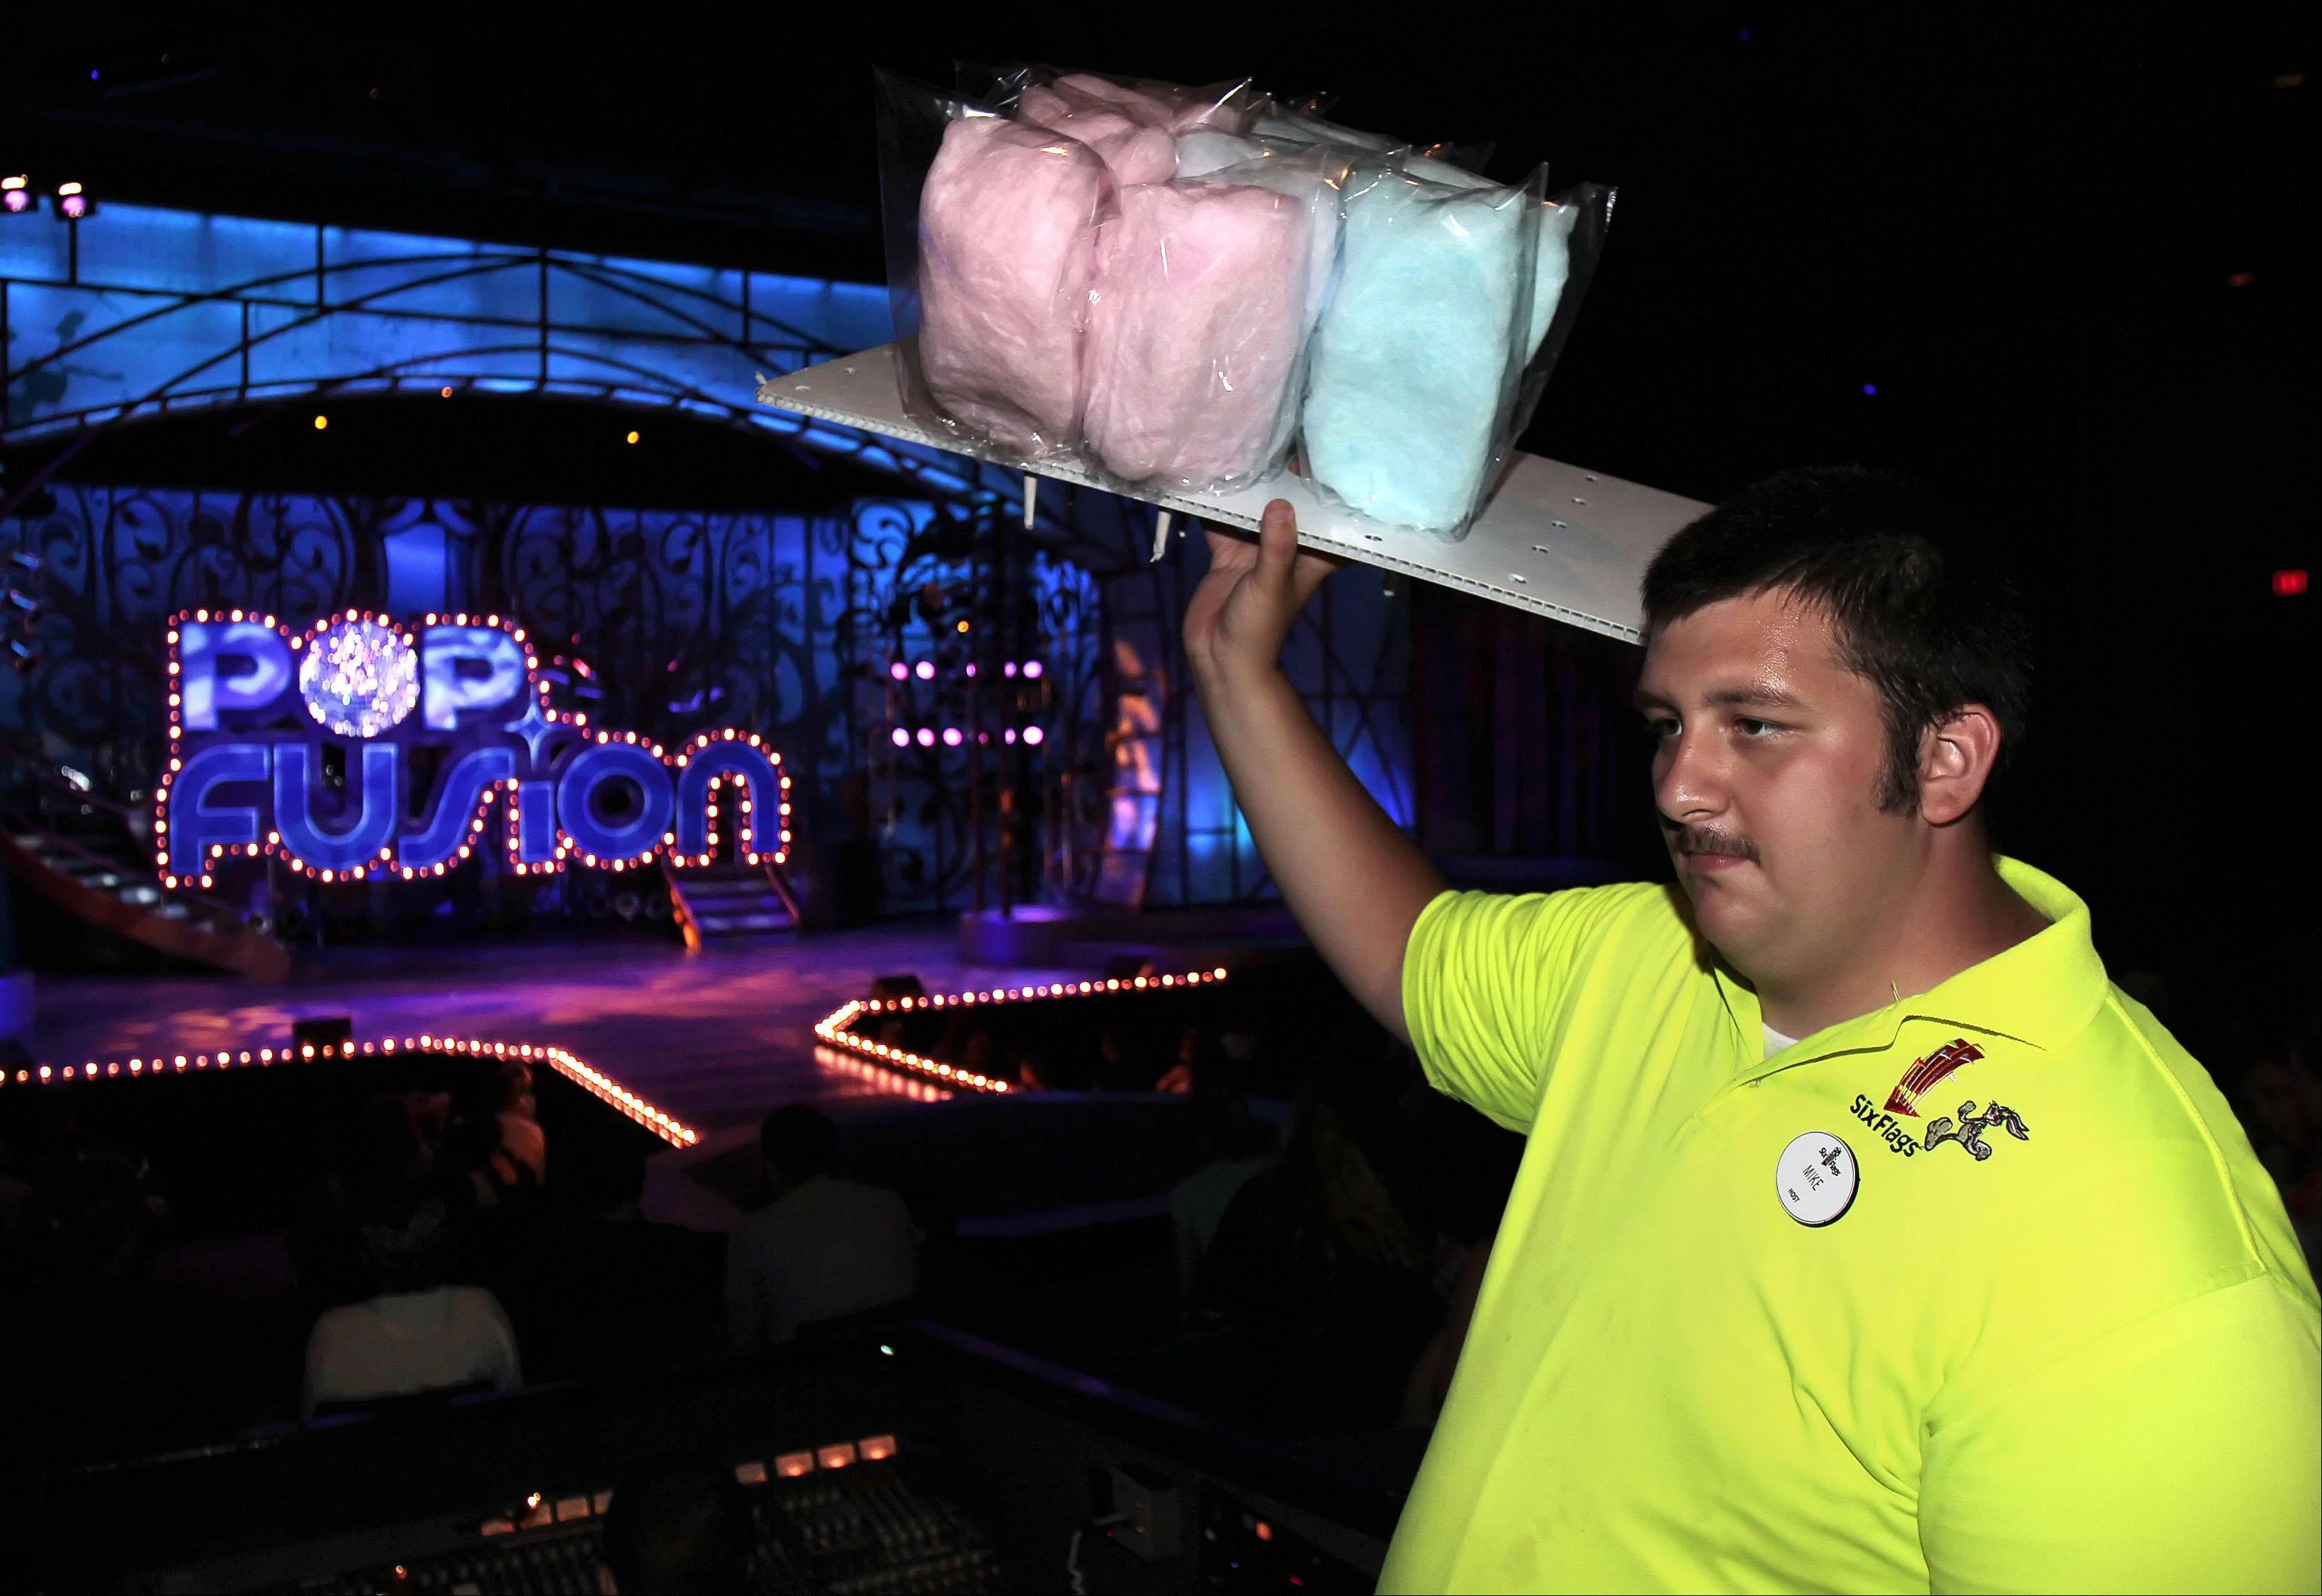 Mike Antunes of Gurnee sells cotton candy before Pop Fusion opens at Six Flags.